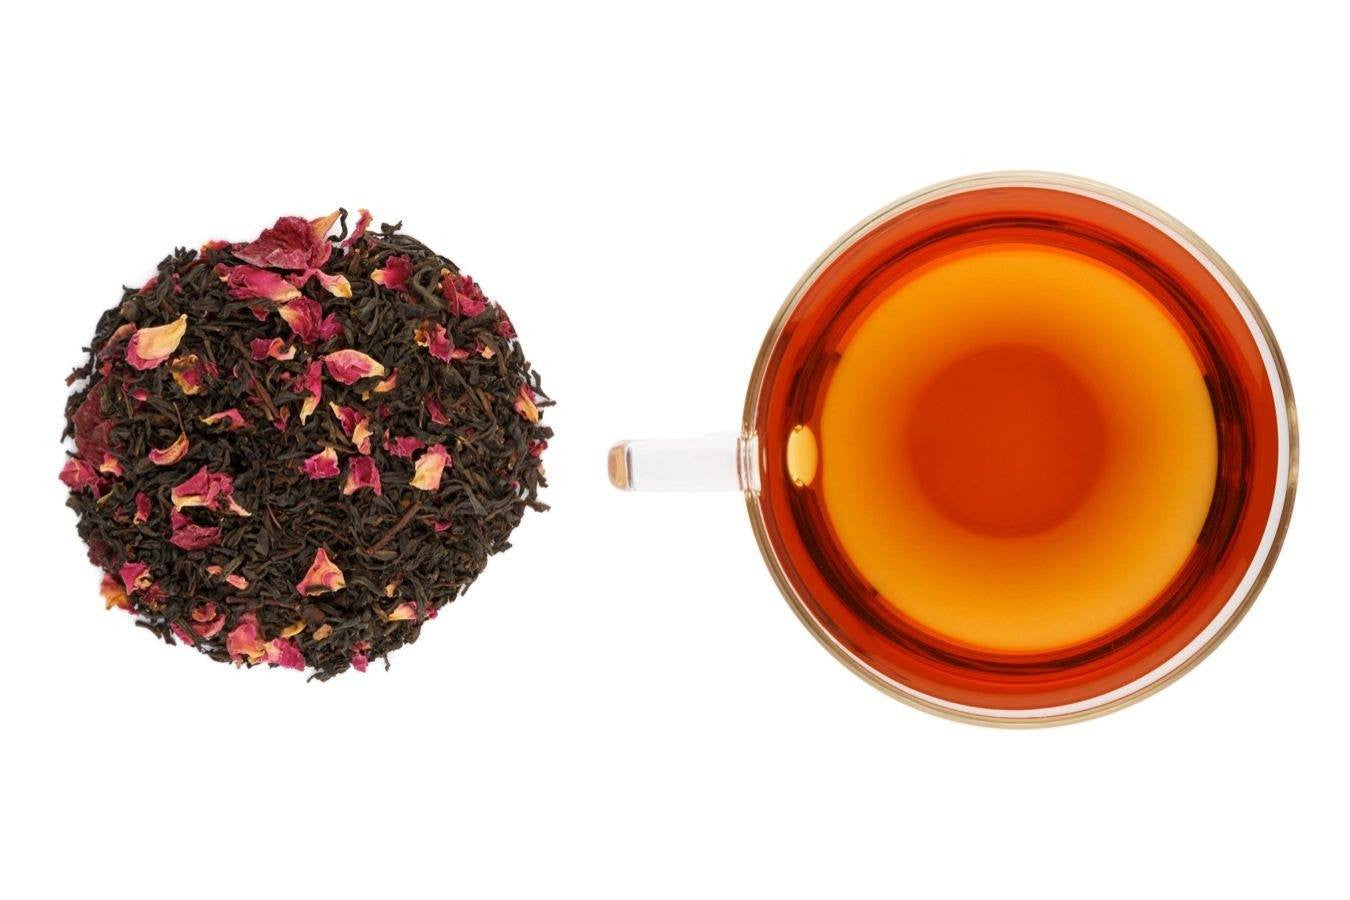 Rose Earl Grey Loose Tea 50g - Spice Kitchen - Spices, Spice Blends, Gifts & Cookware